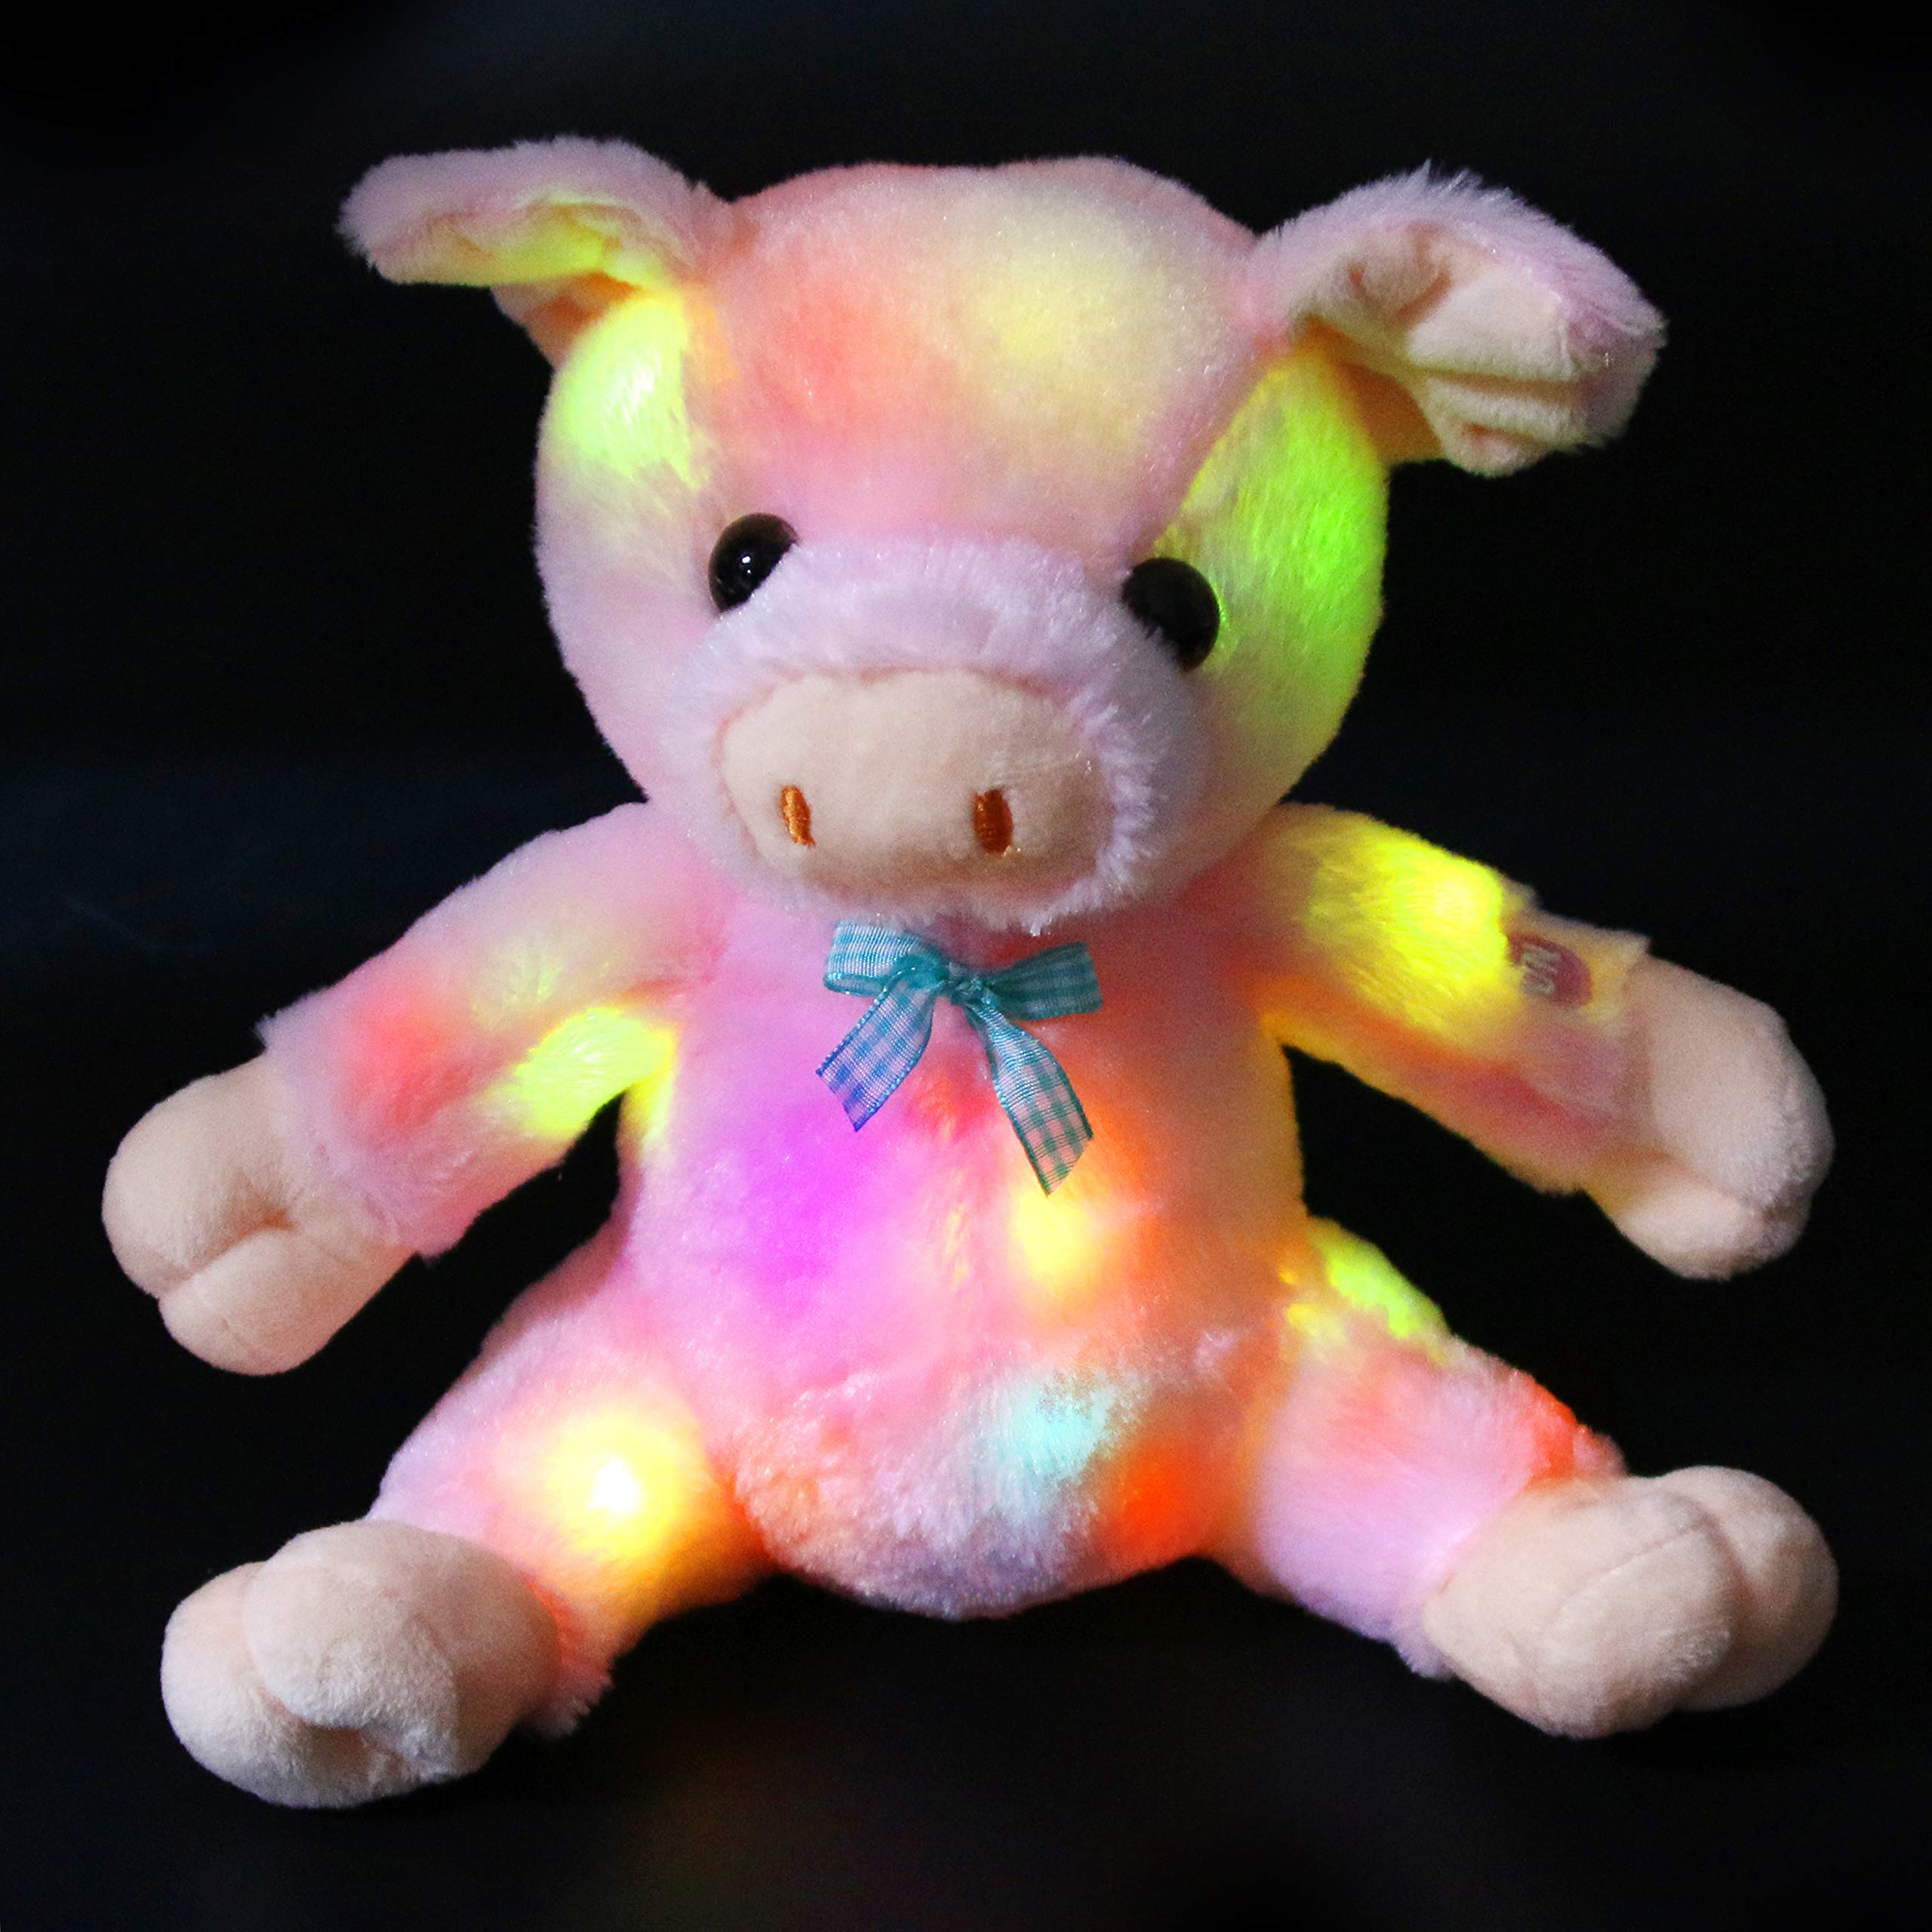 Bstaofy Glow Pink Pig Stuffed Animal LED Light up Piggy Plush Toy Bedtime Fluffy Birthday for Toddlers Kids, 9.5''